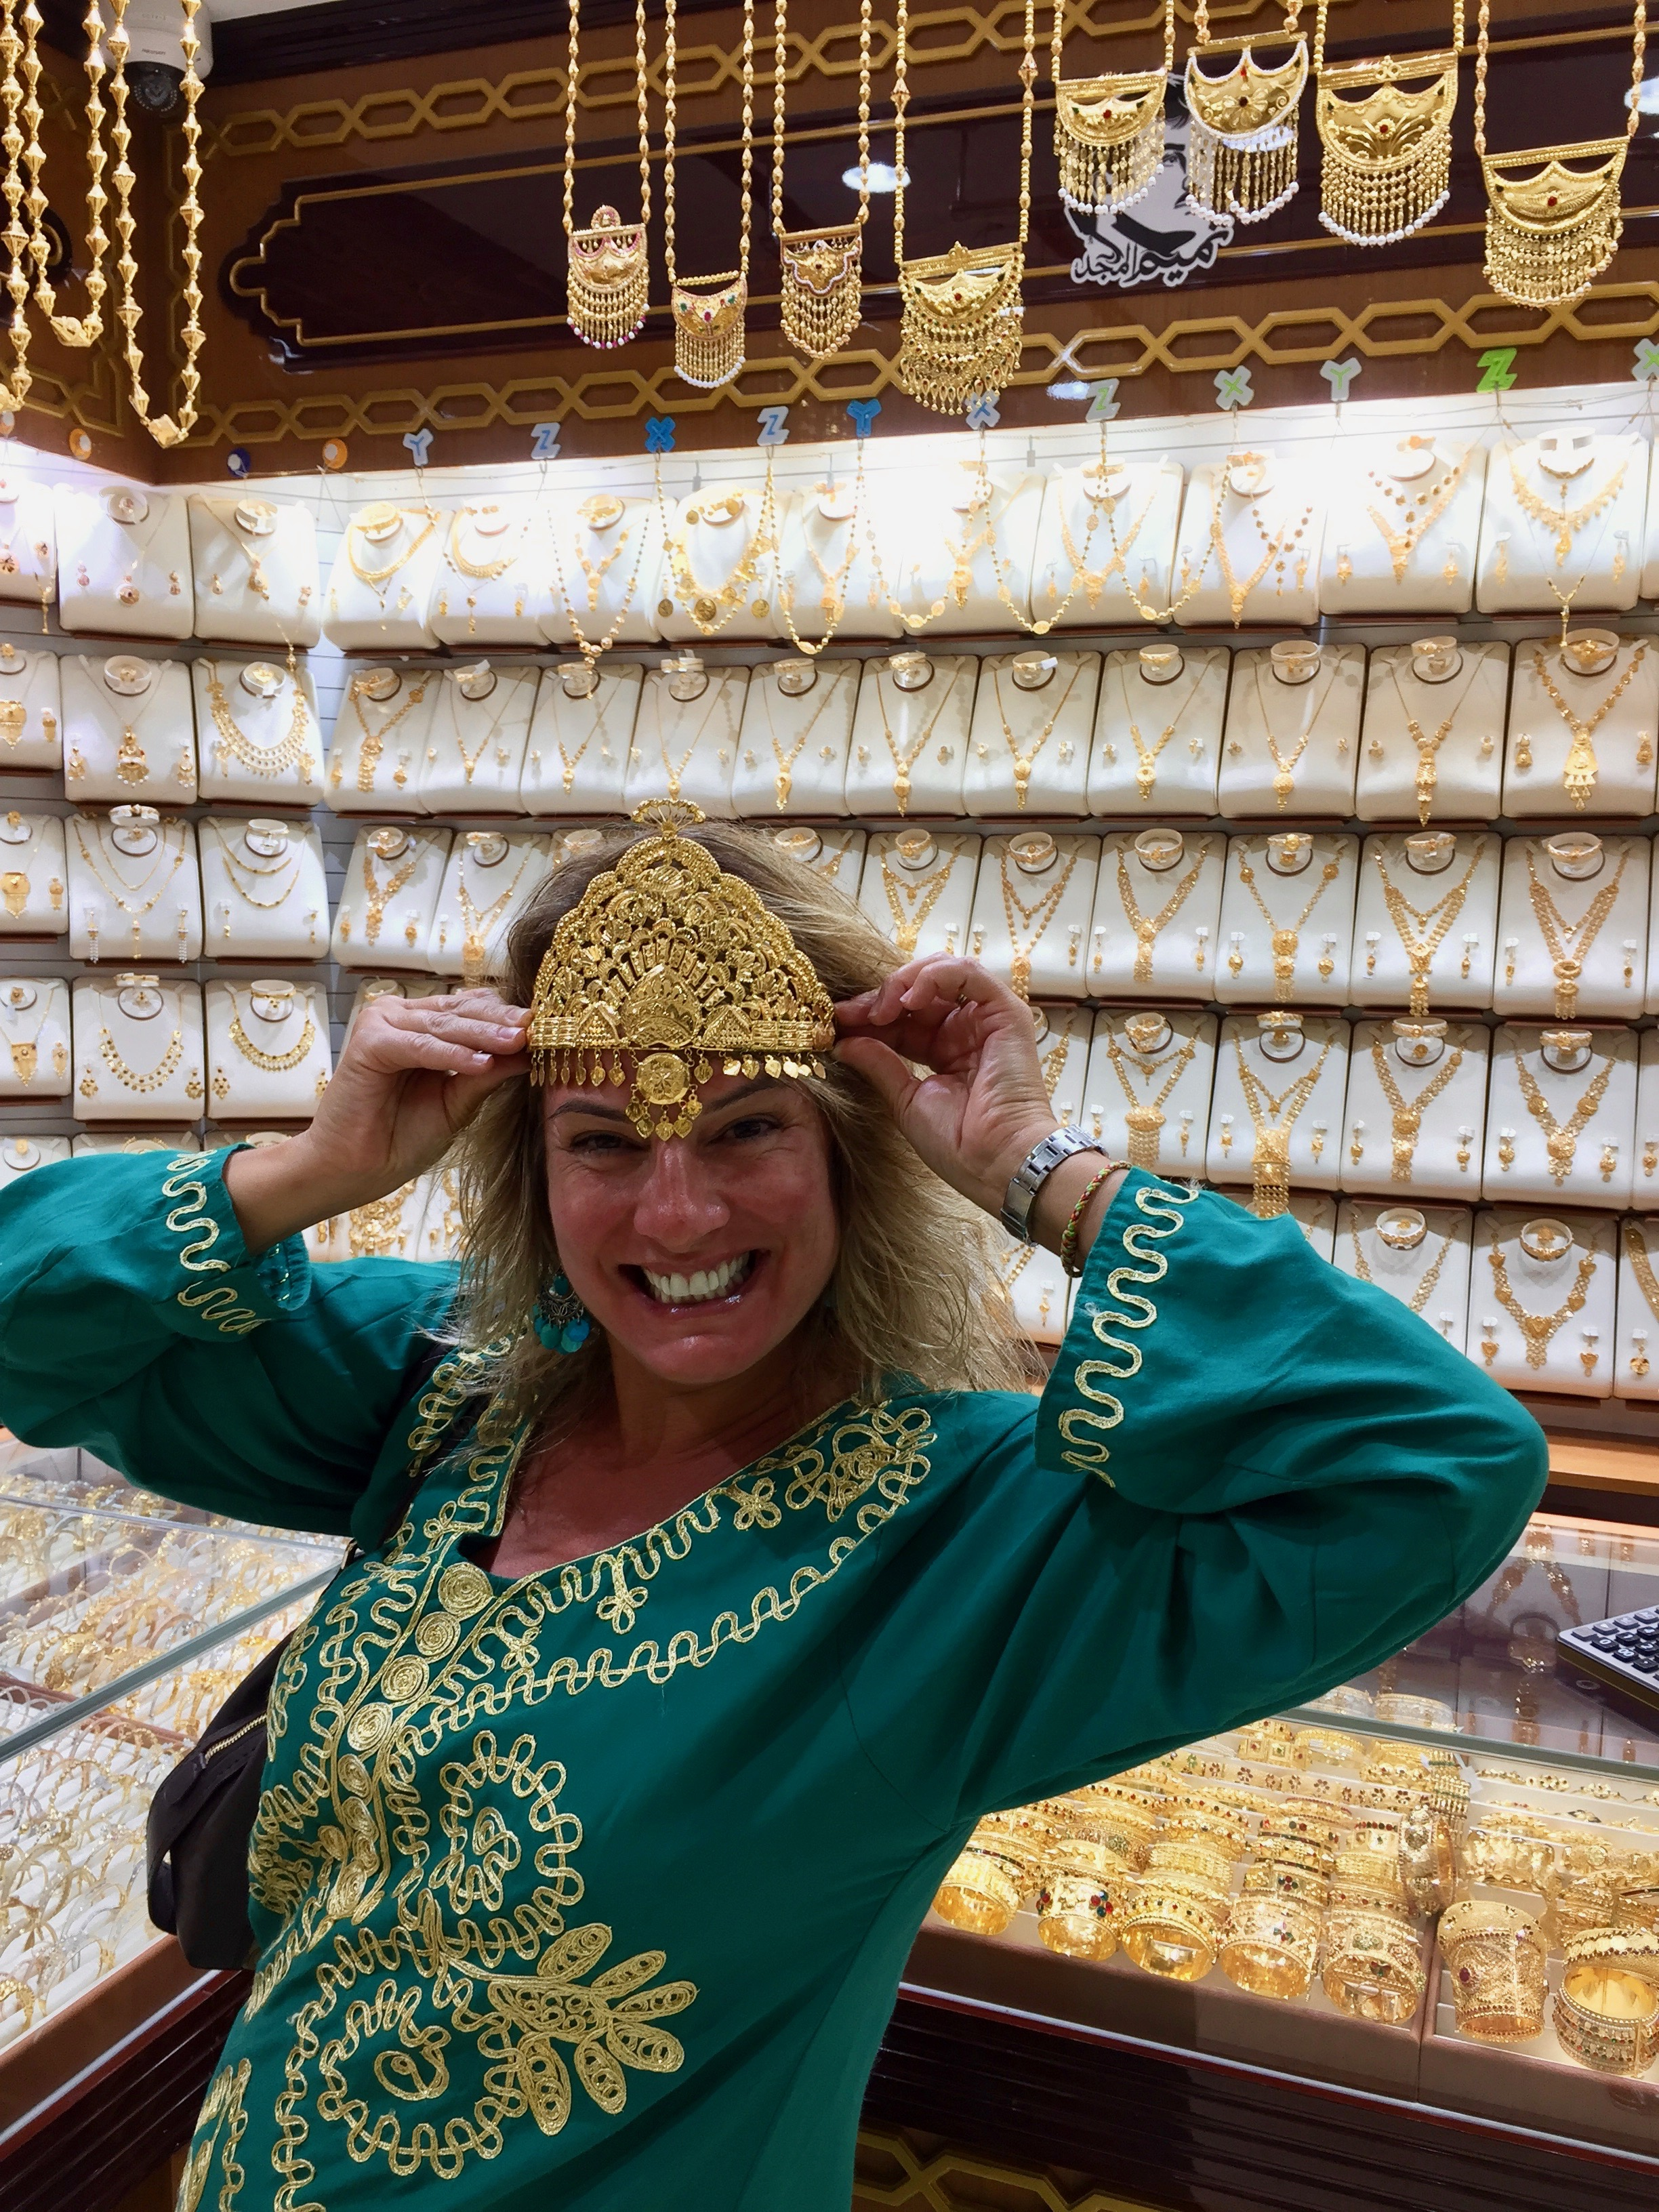 2017 - Souq Waqif, Qatar - Wearing a crown of gold, just like an empowered queen!